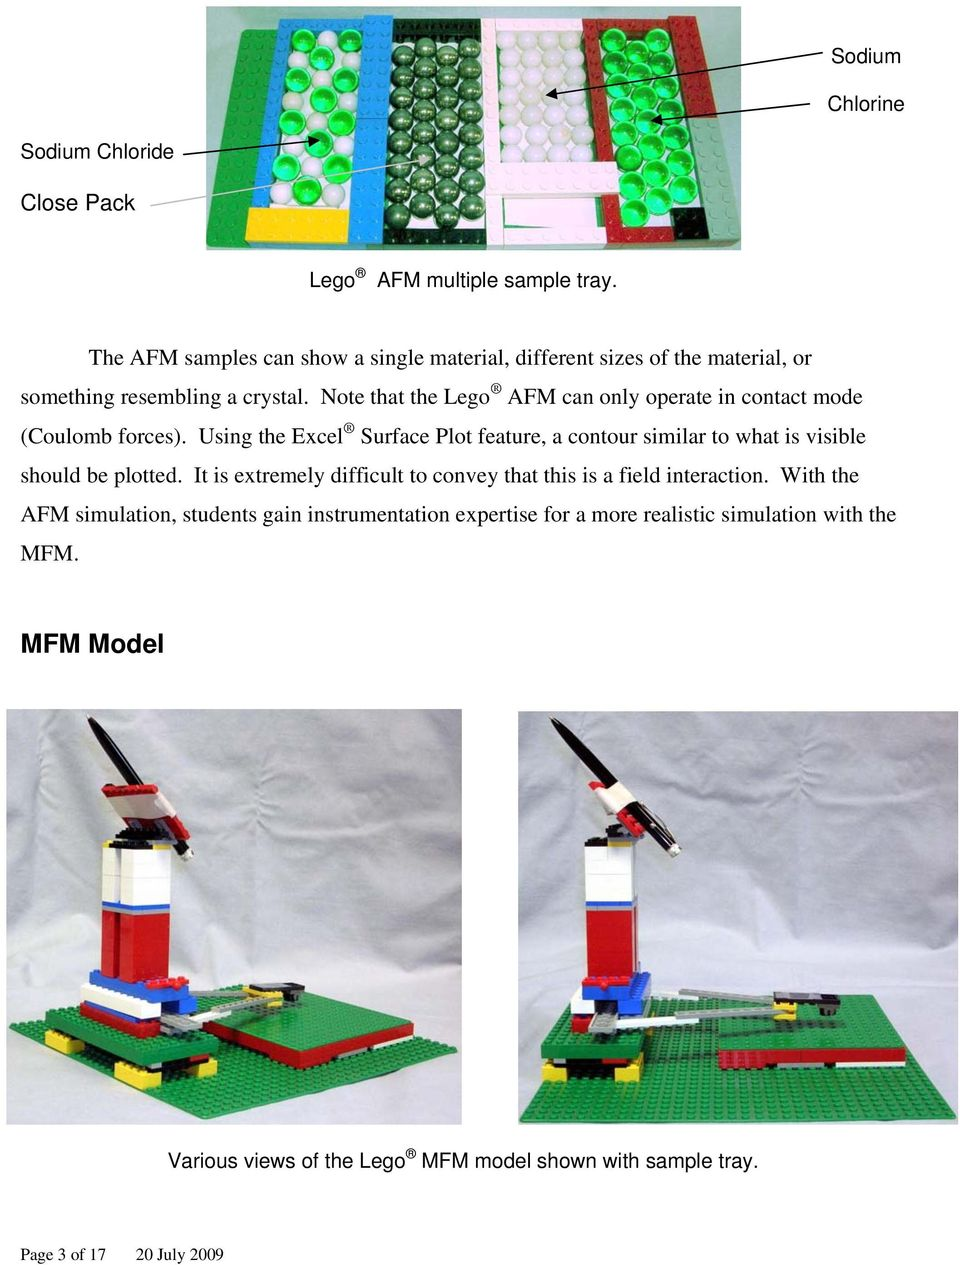 Note that the Lego AFM can only operate in contact mode (Coulomb forces).